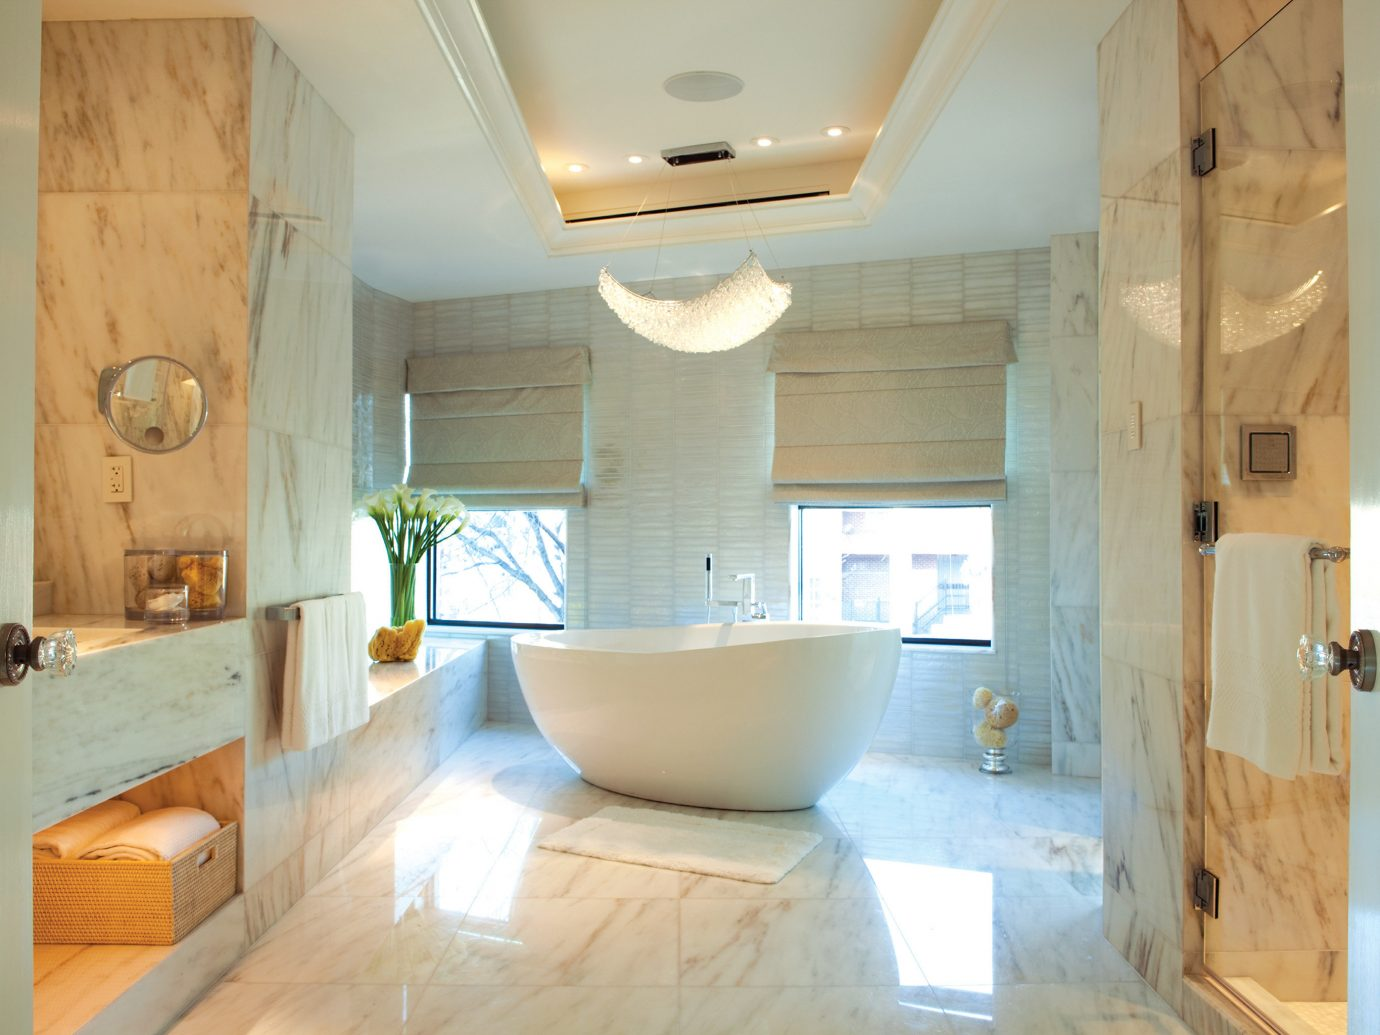 Bath Elegant Hotels indoor wall bathroom room property house floor home estate interior design cottage sink real estate Design farmhouse flooring apartment tub